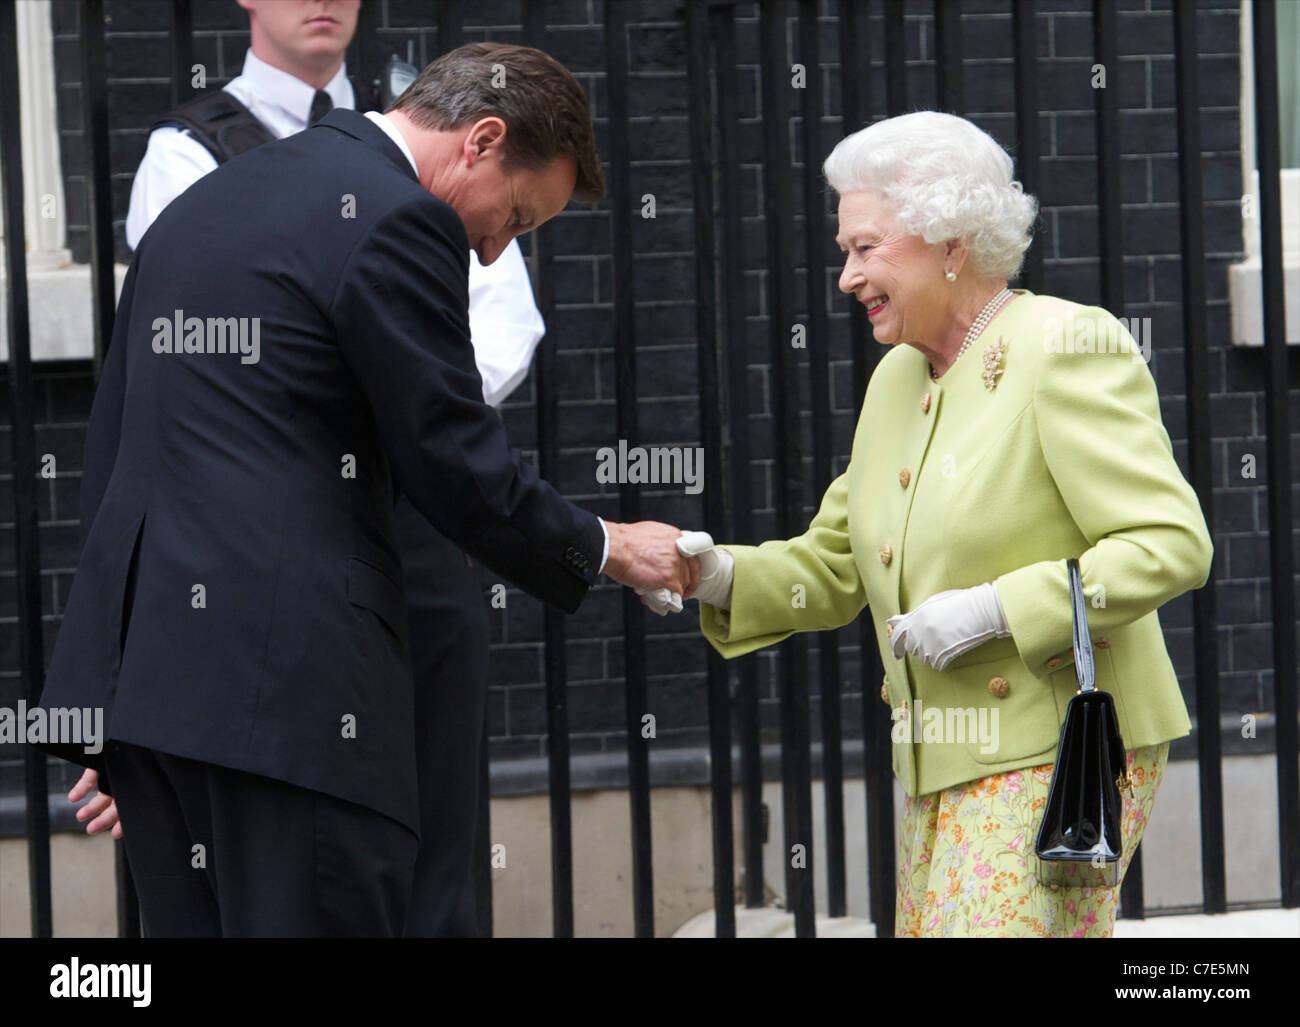 HRH The Queen and Duke of Edinburgh meet David and Samantha Cameron out side ten Downing street to Celebrate his - Stock Image